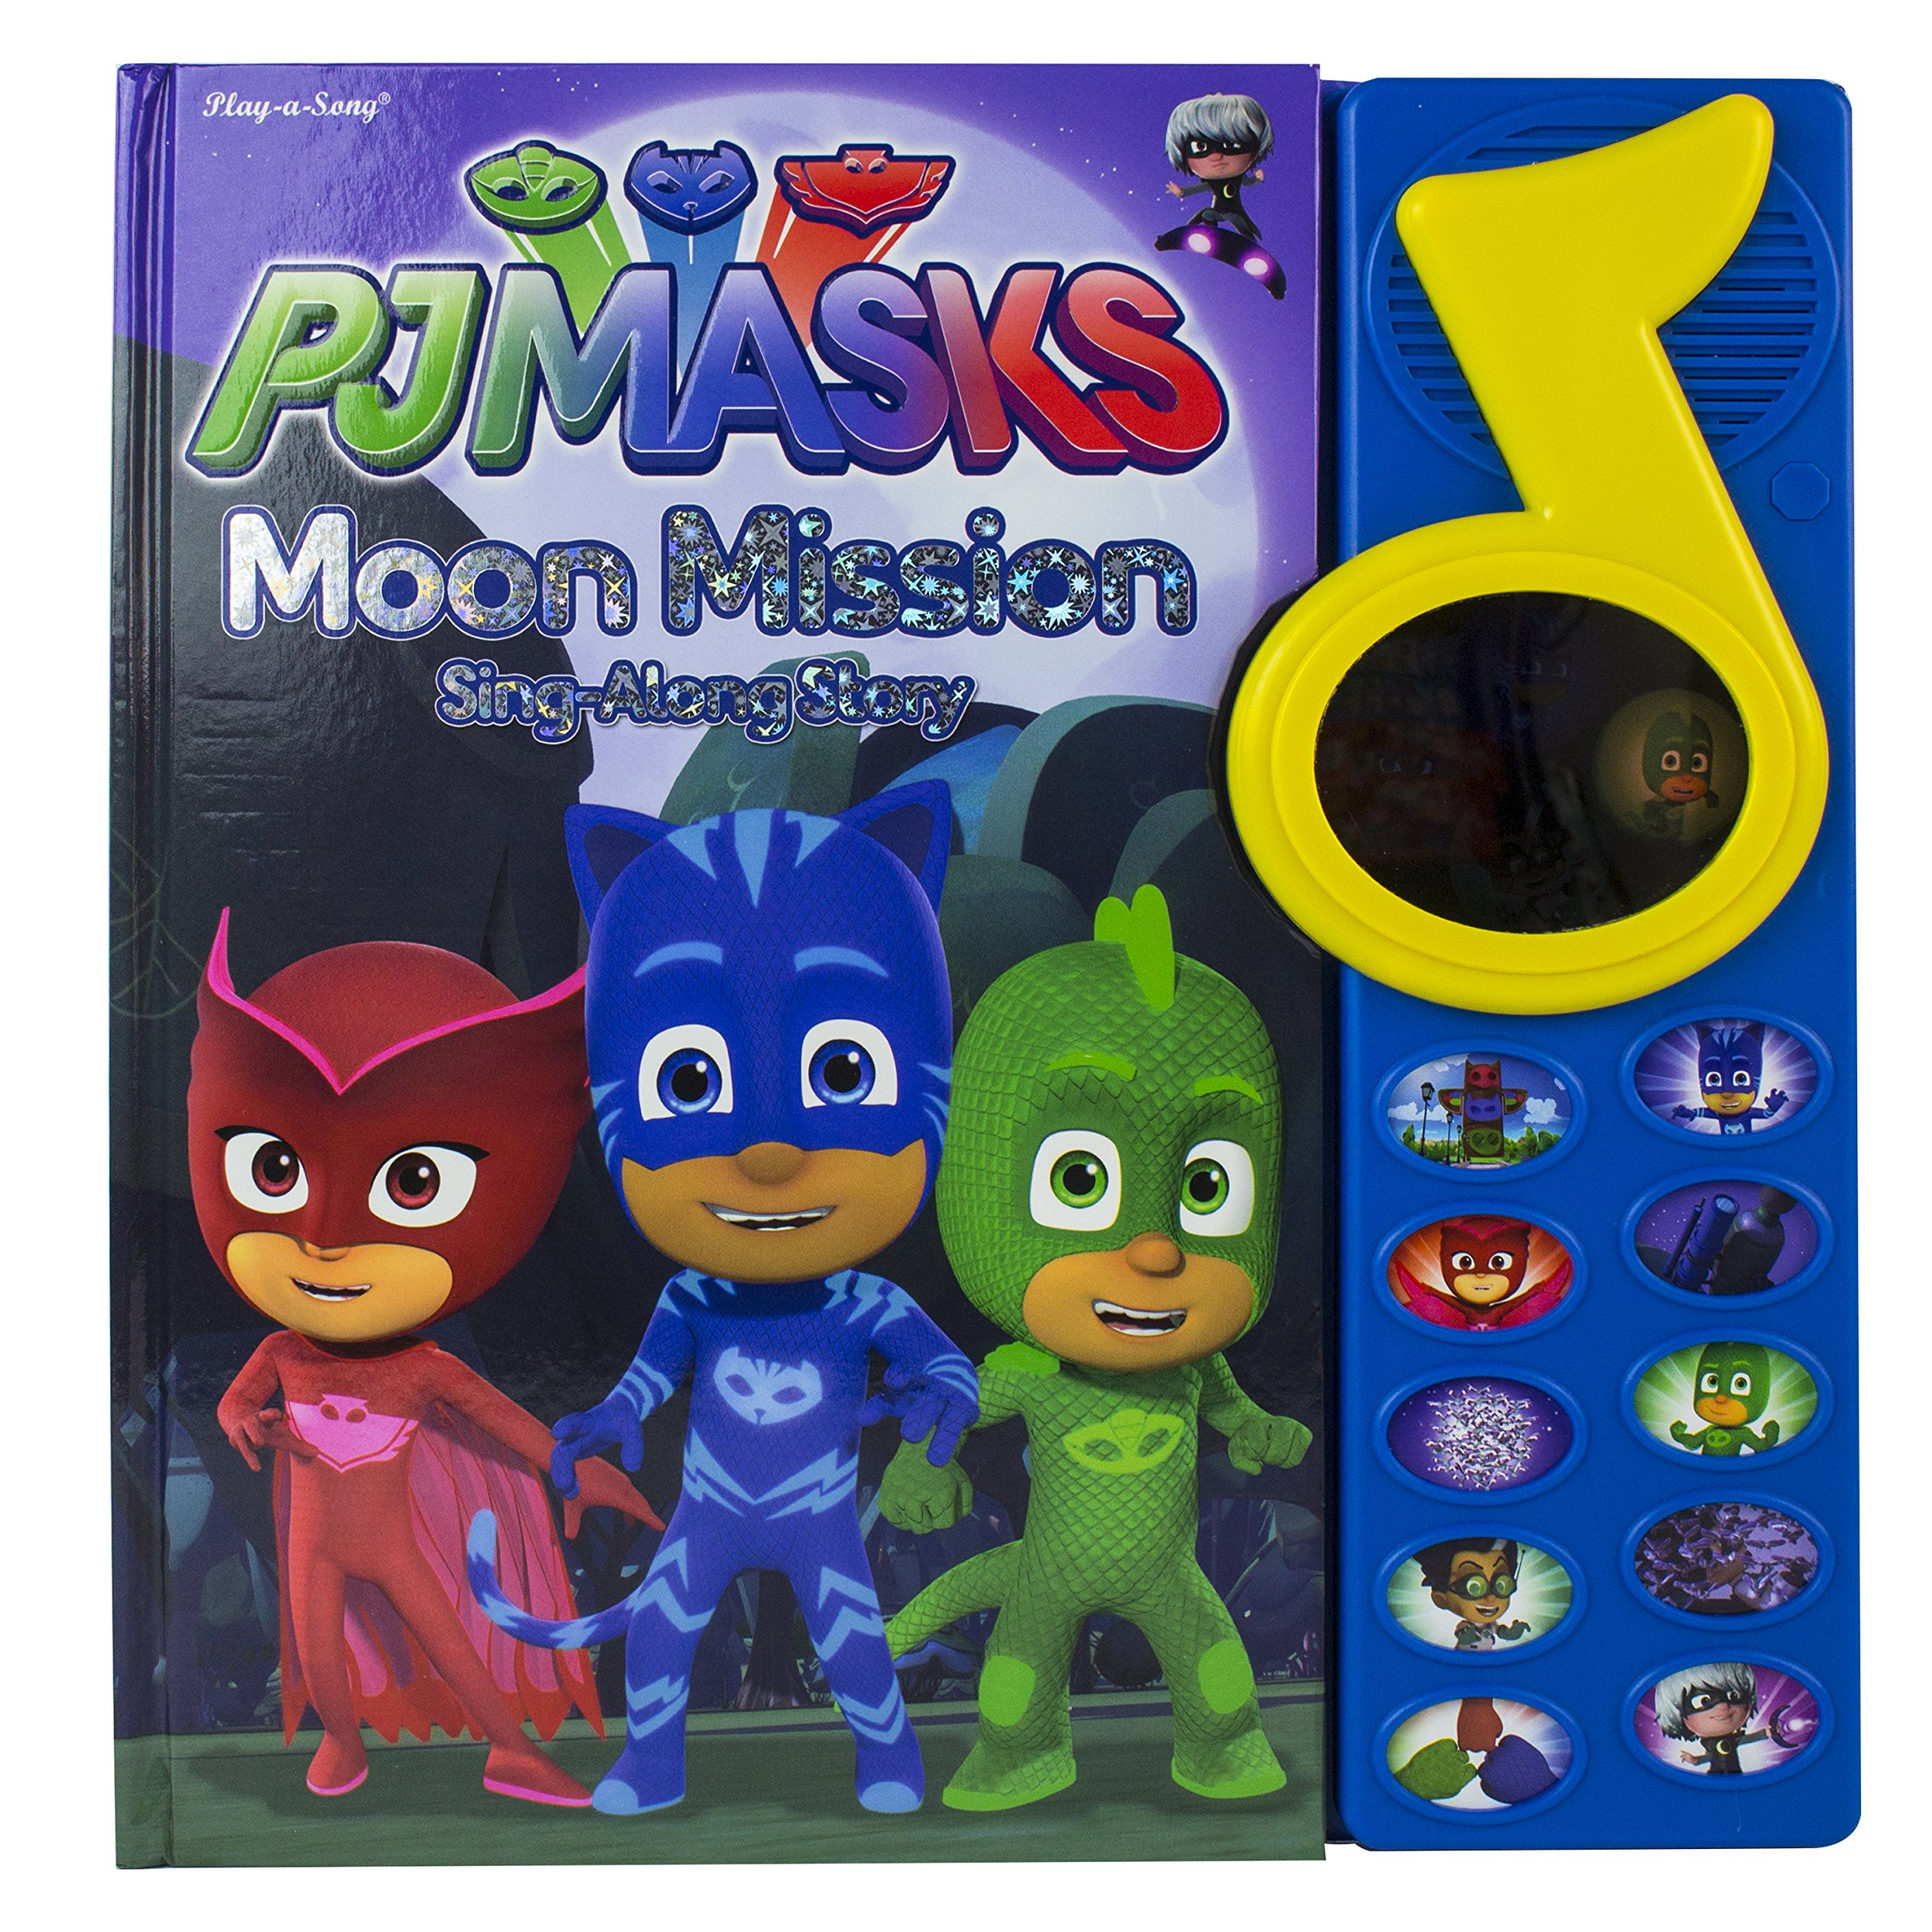 PJ Masks Moon Mission Sing-Along Story Sound Book with Mirror 9781503726987: Adapted by Erin Rose Wage: 9781503726987: Amazon.com: Books